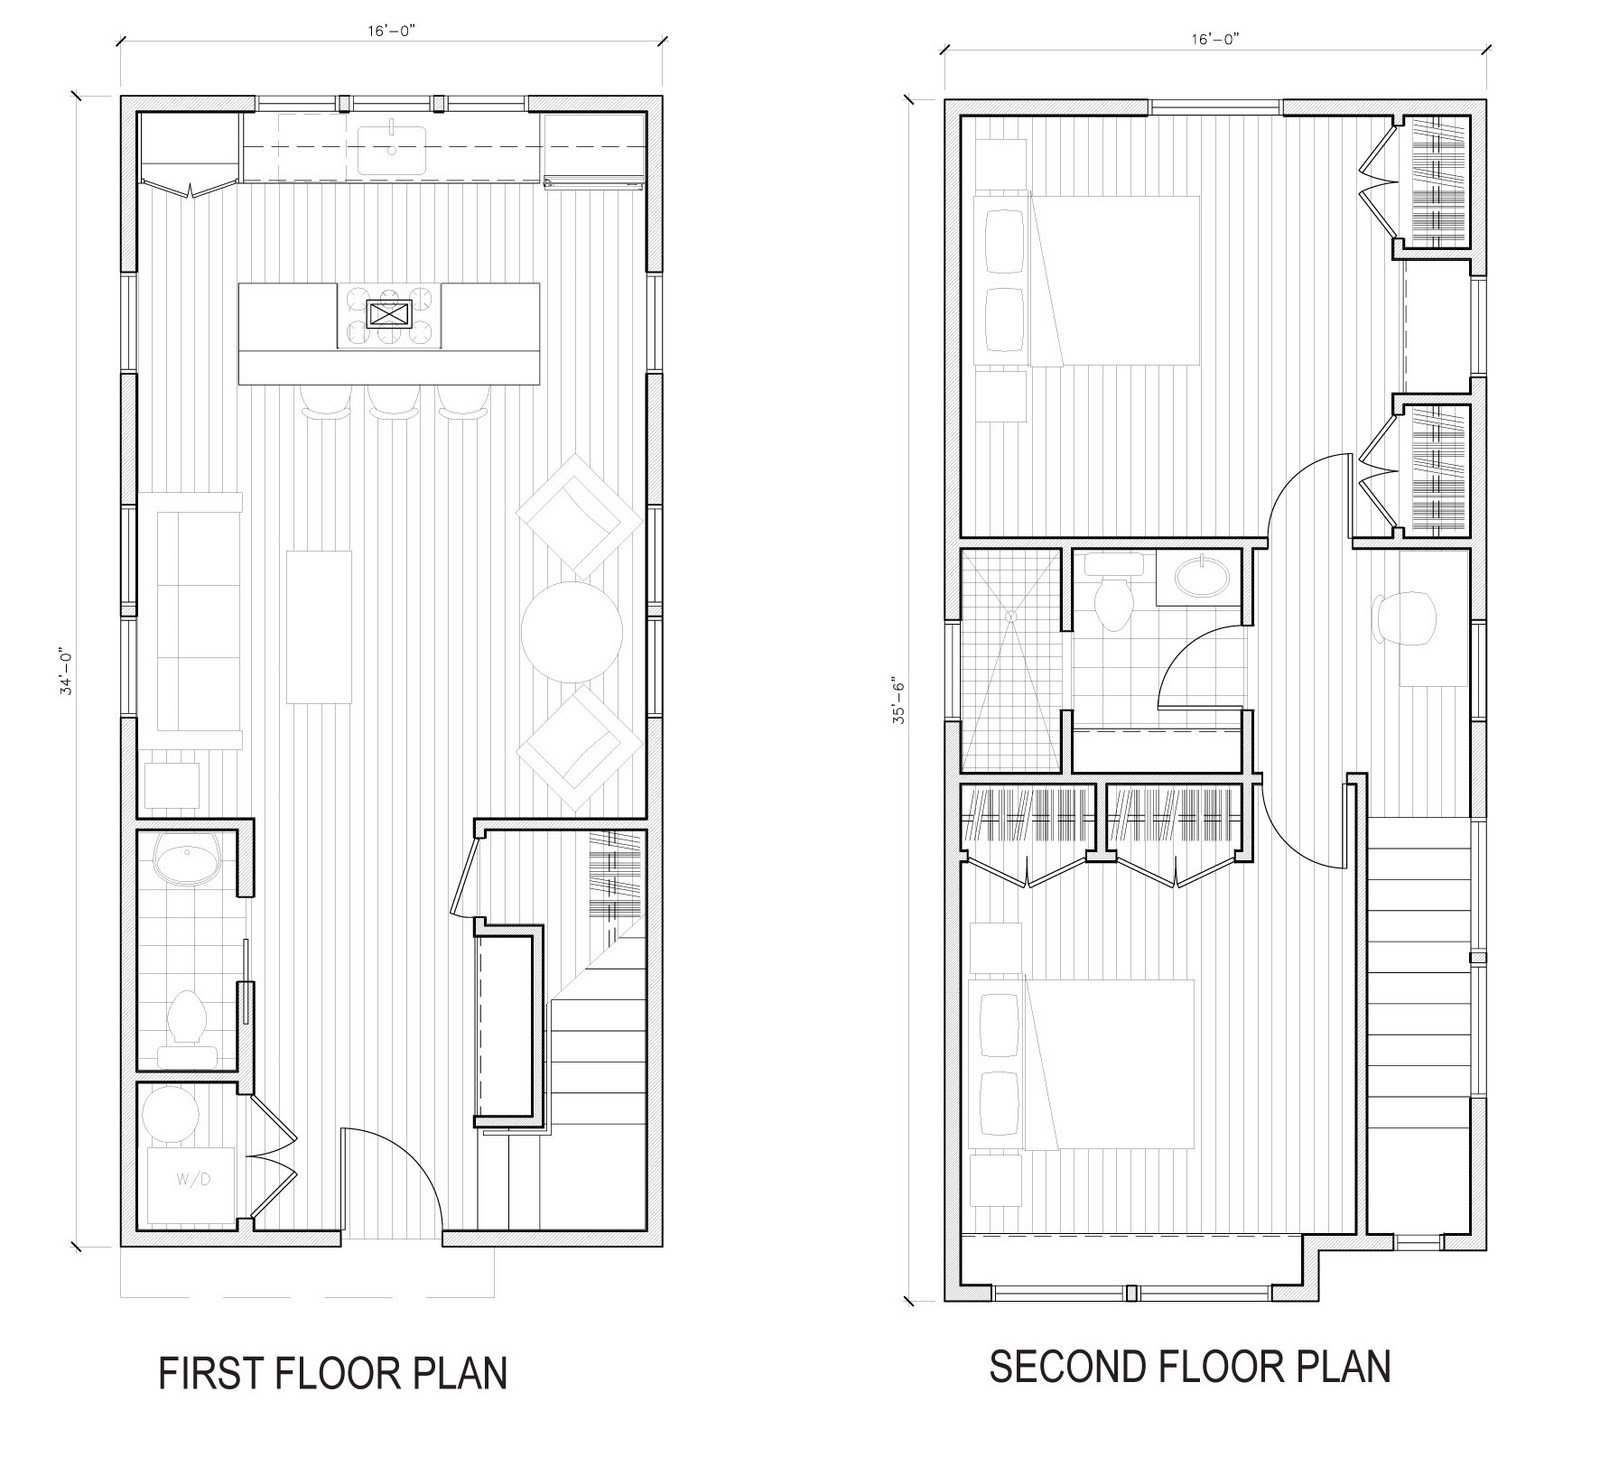 500 Sq Ft House Plans In Tamilnadu Small House Floor Plans